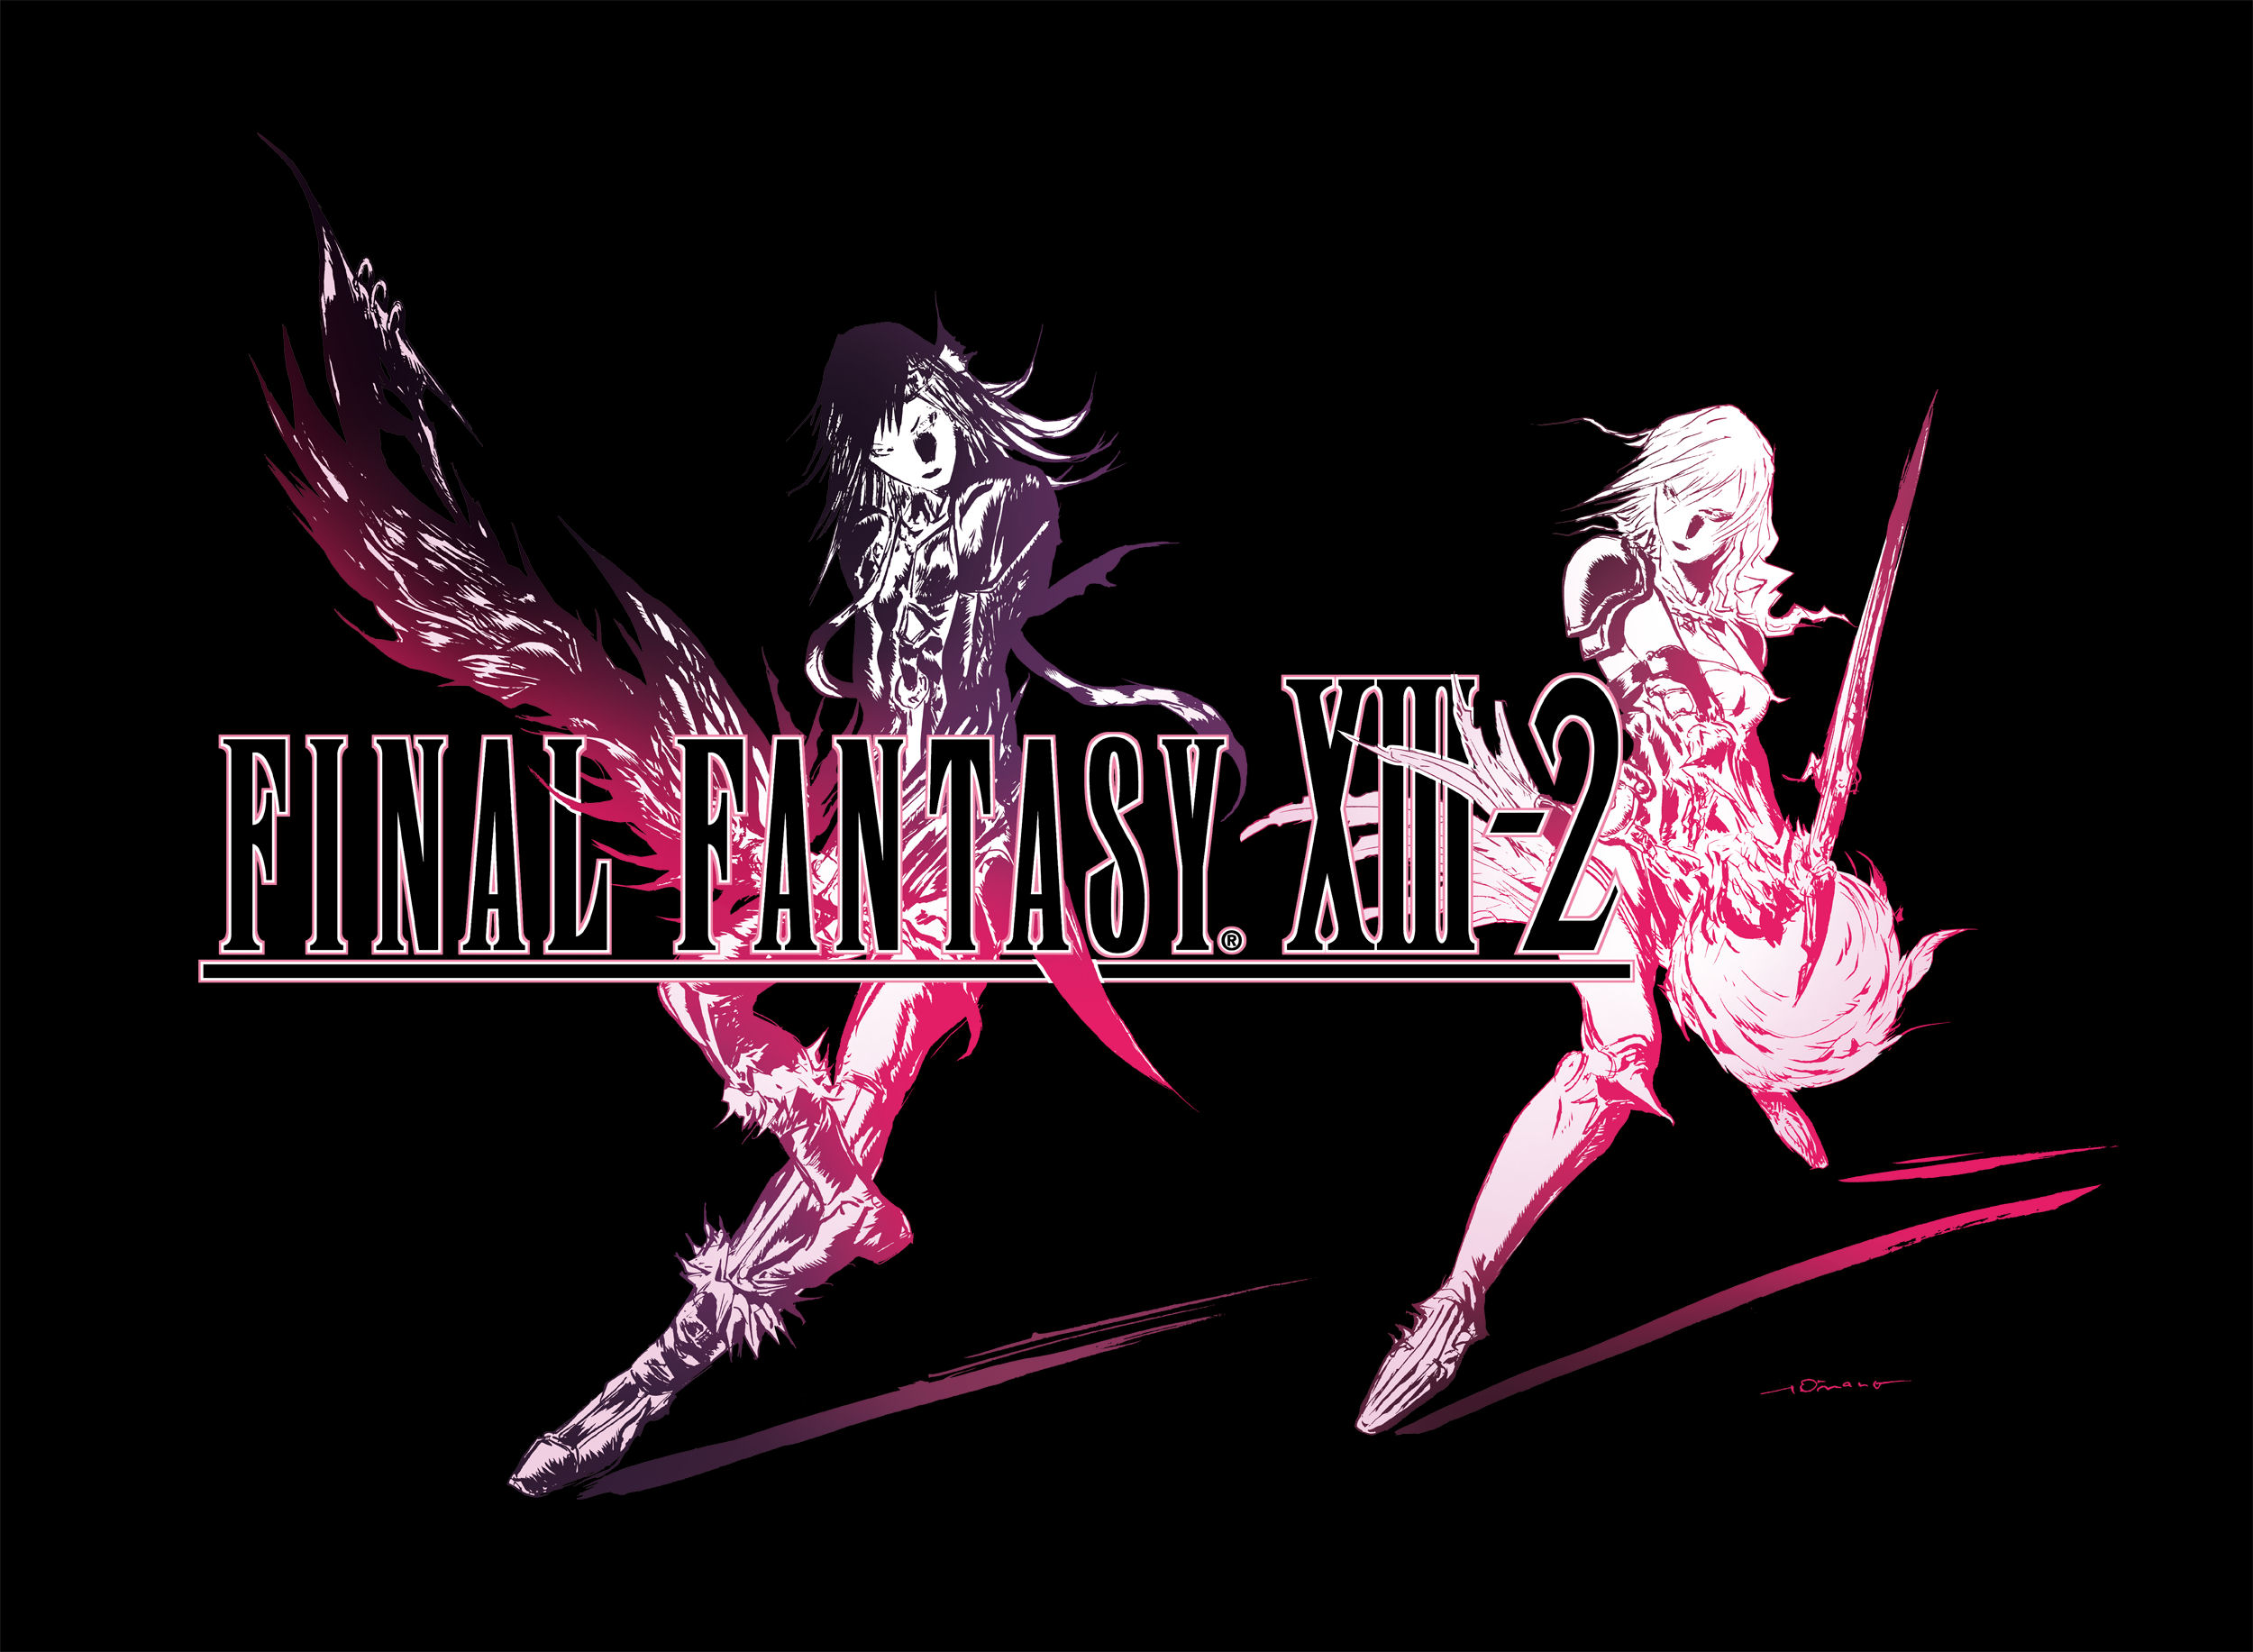 New Site For Final Fantasy XIII-2